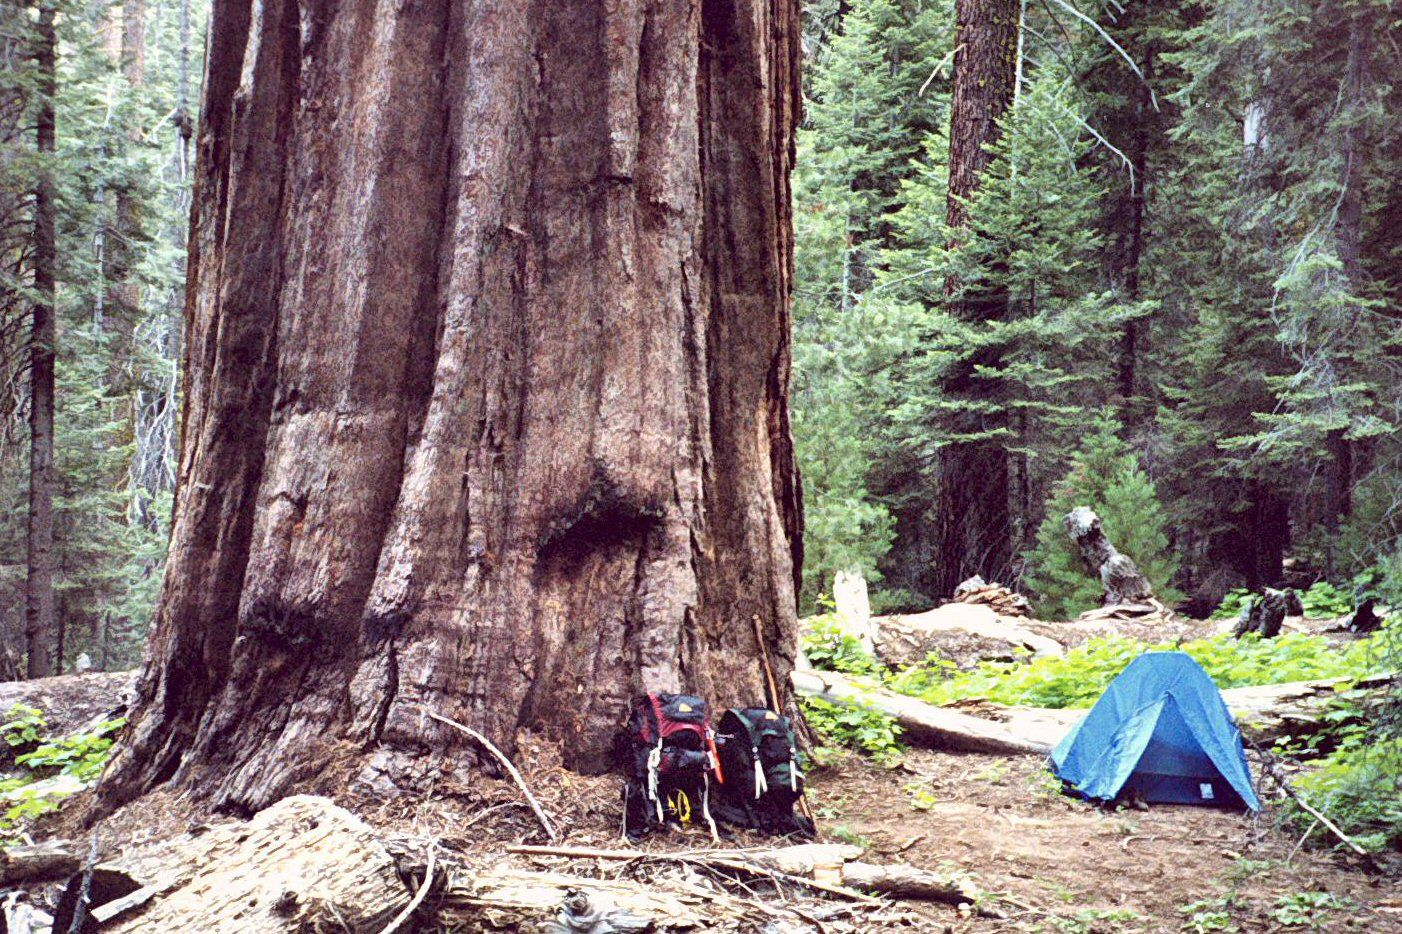 Kings Canyon, camping, tent backpacking, redwoods